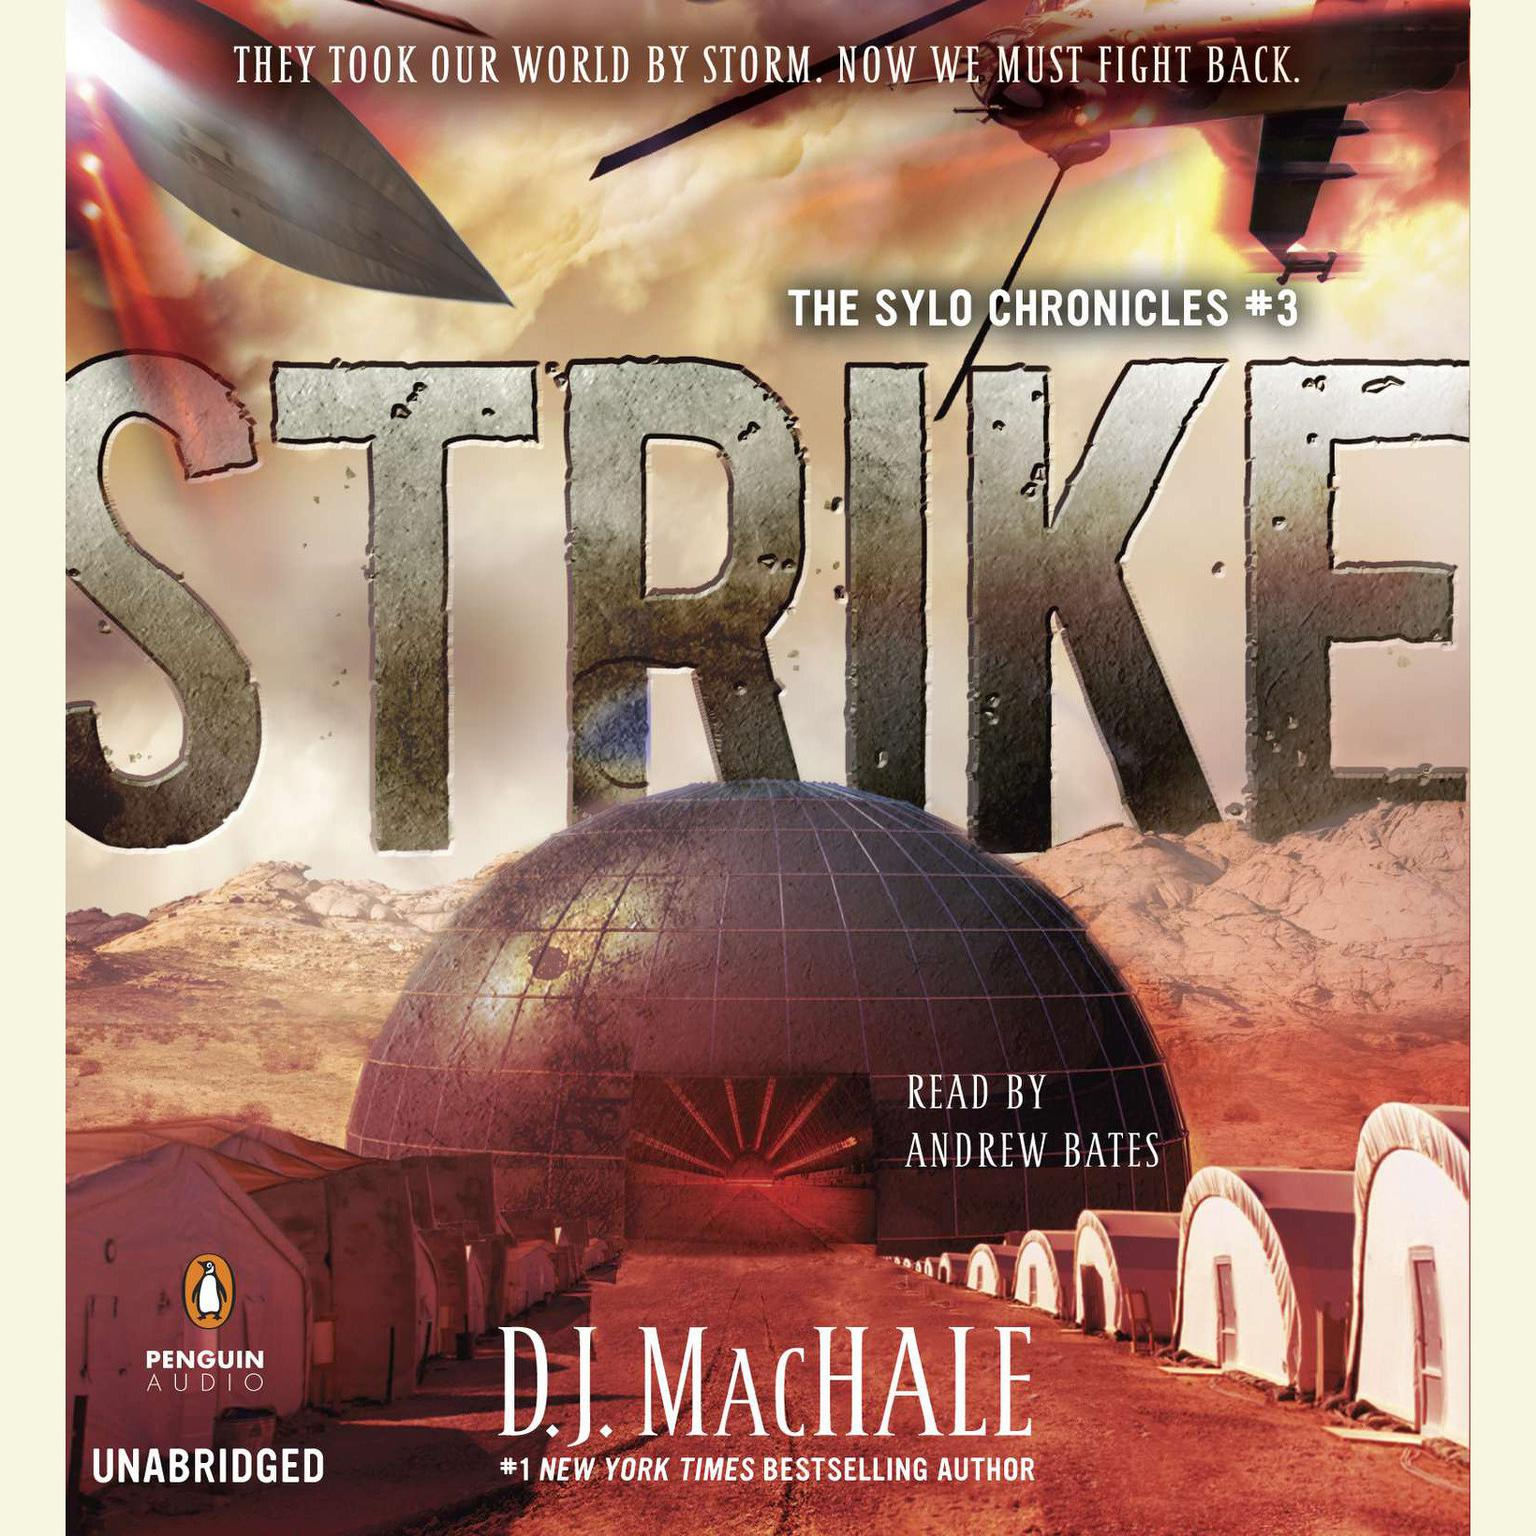 Printable Strike: The SYLO Chronicles #3 Audiobook Cover Art